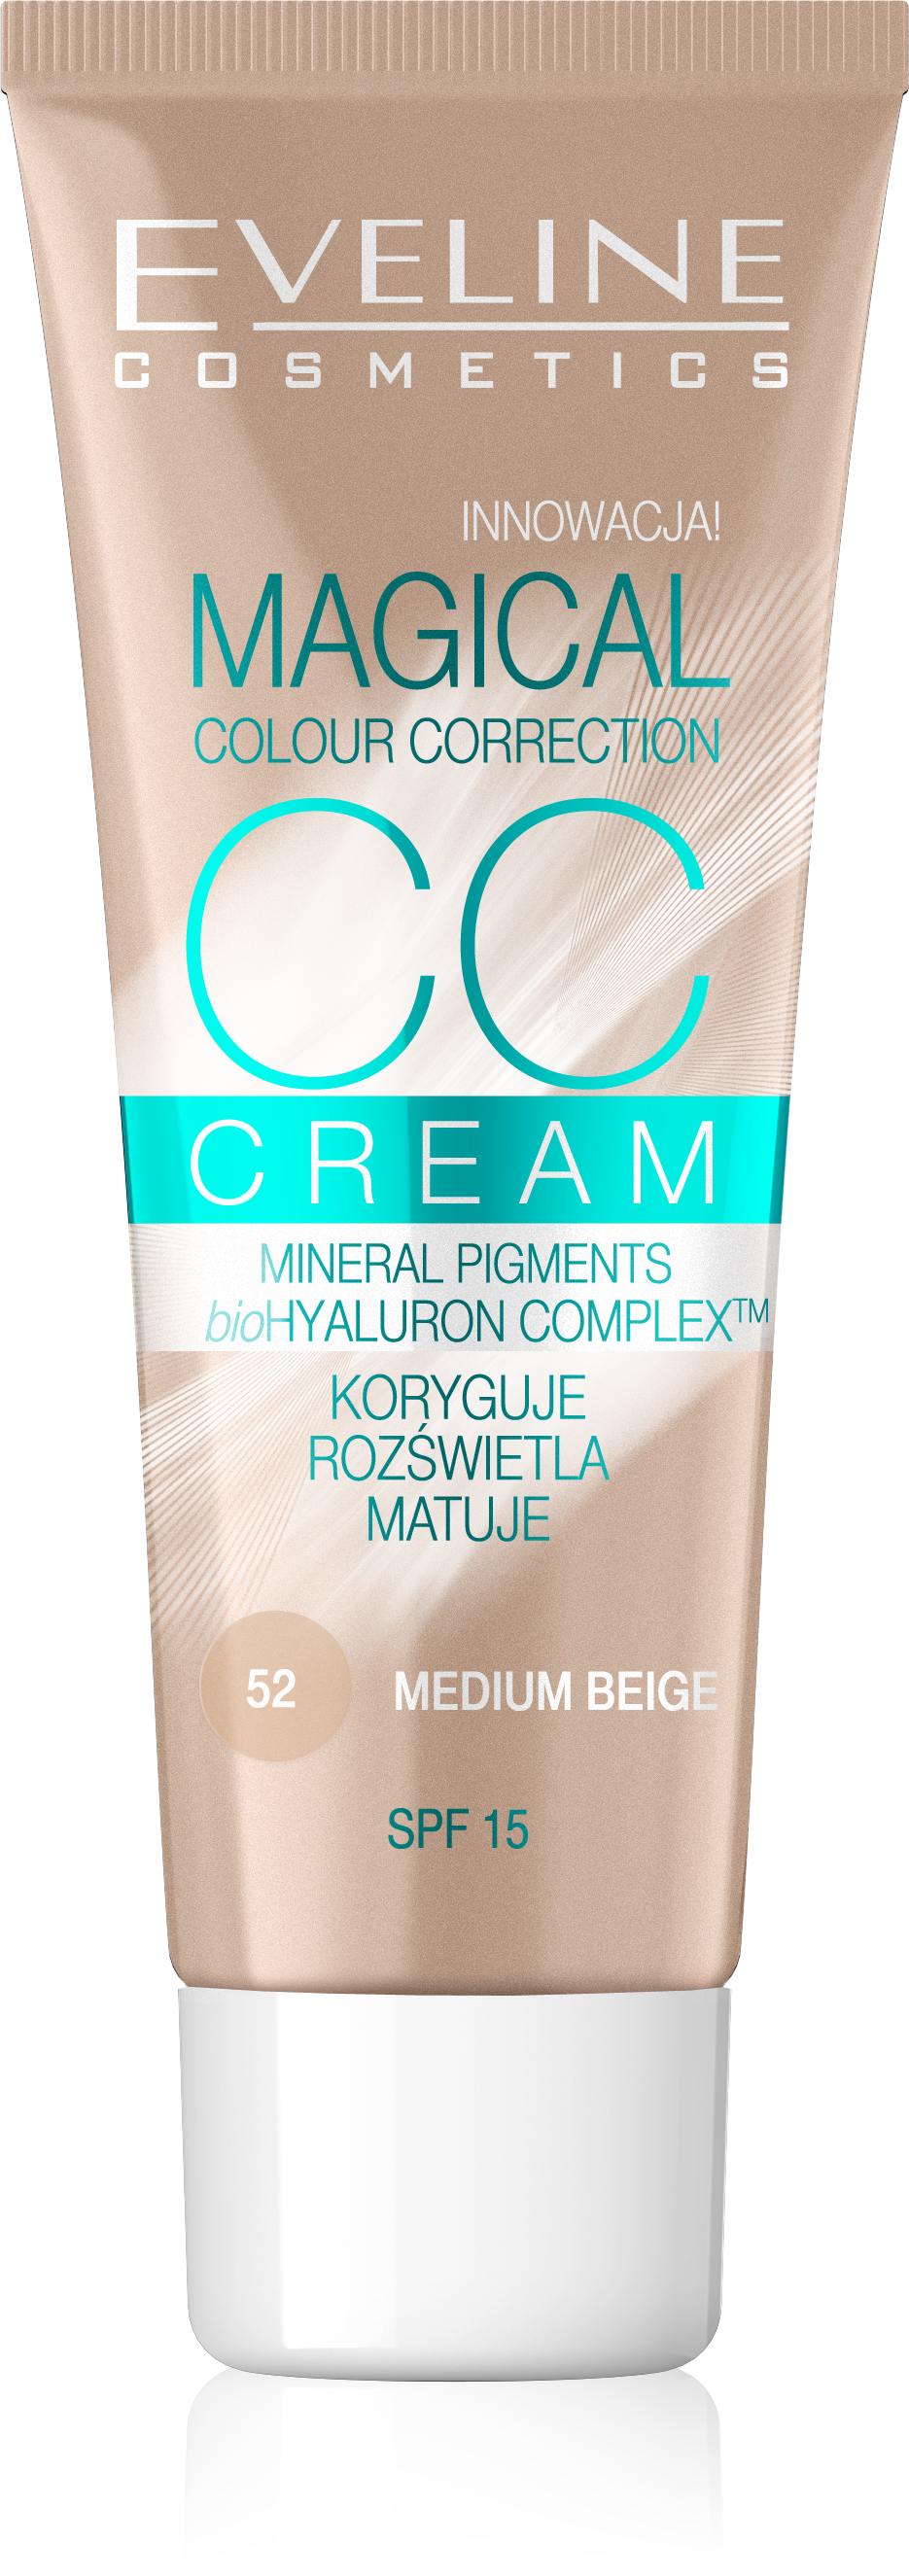 EVELINE MAKE UP - Magical CC Krém 52 medium beige